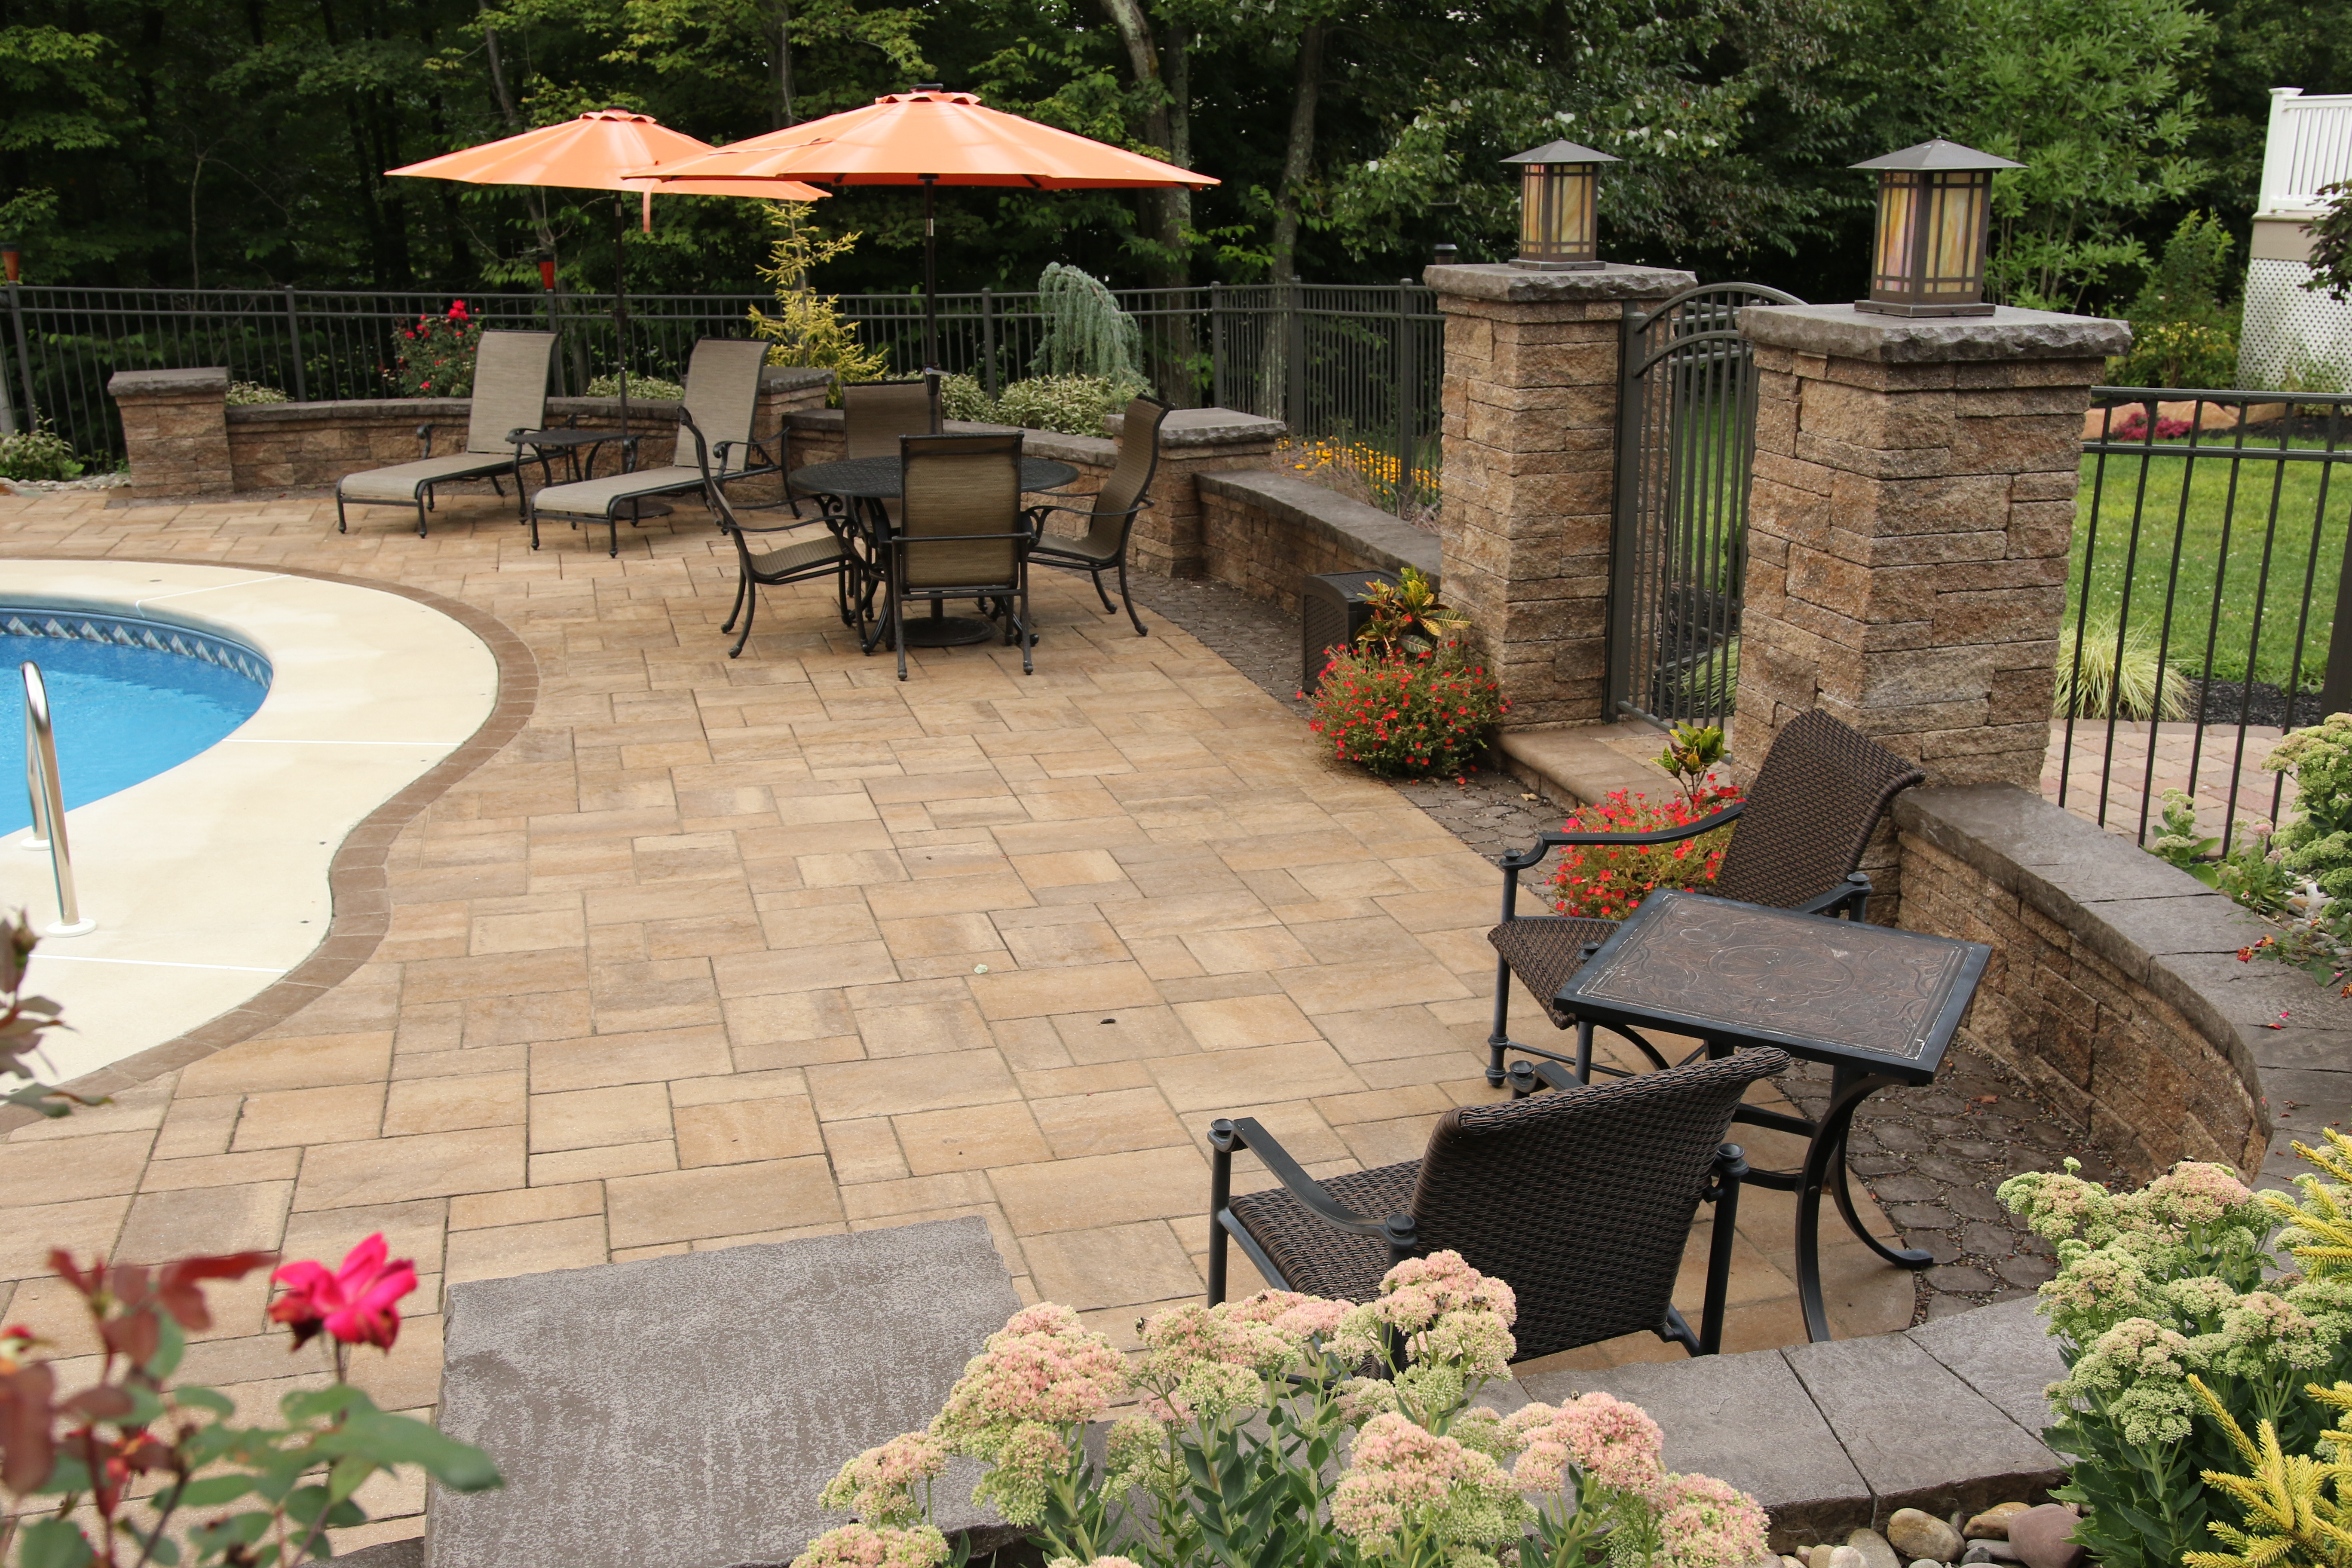 See This Amazing Hardscape Poolside Patio With Landscaping